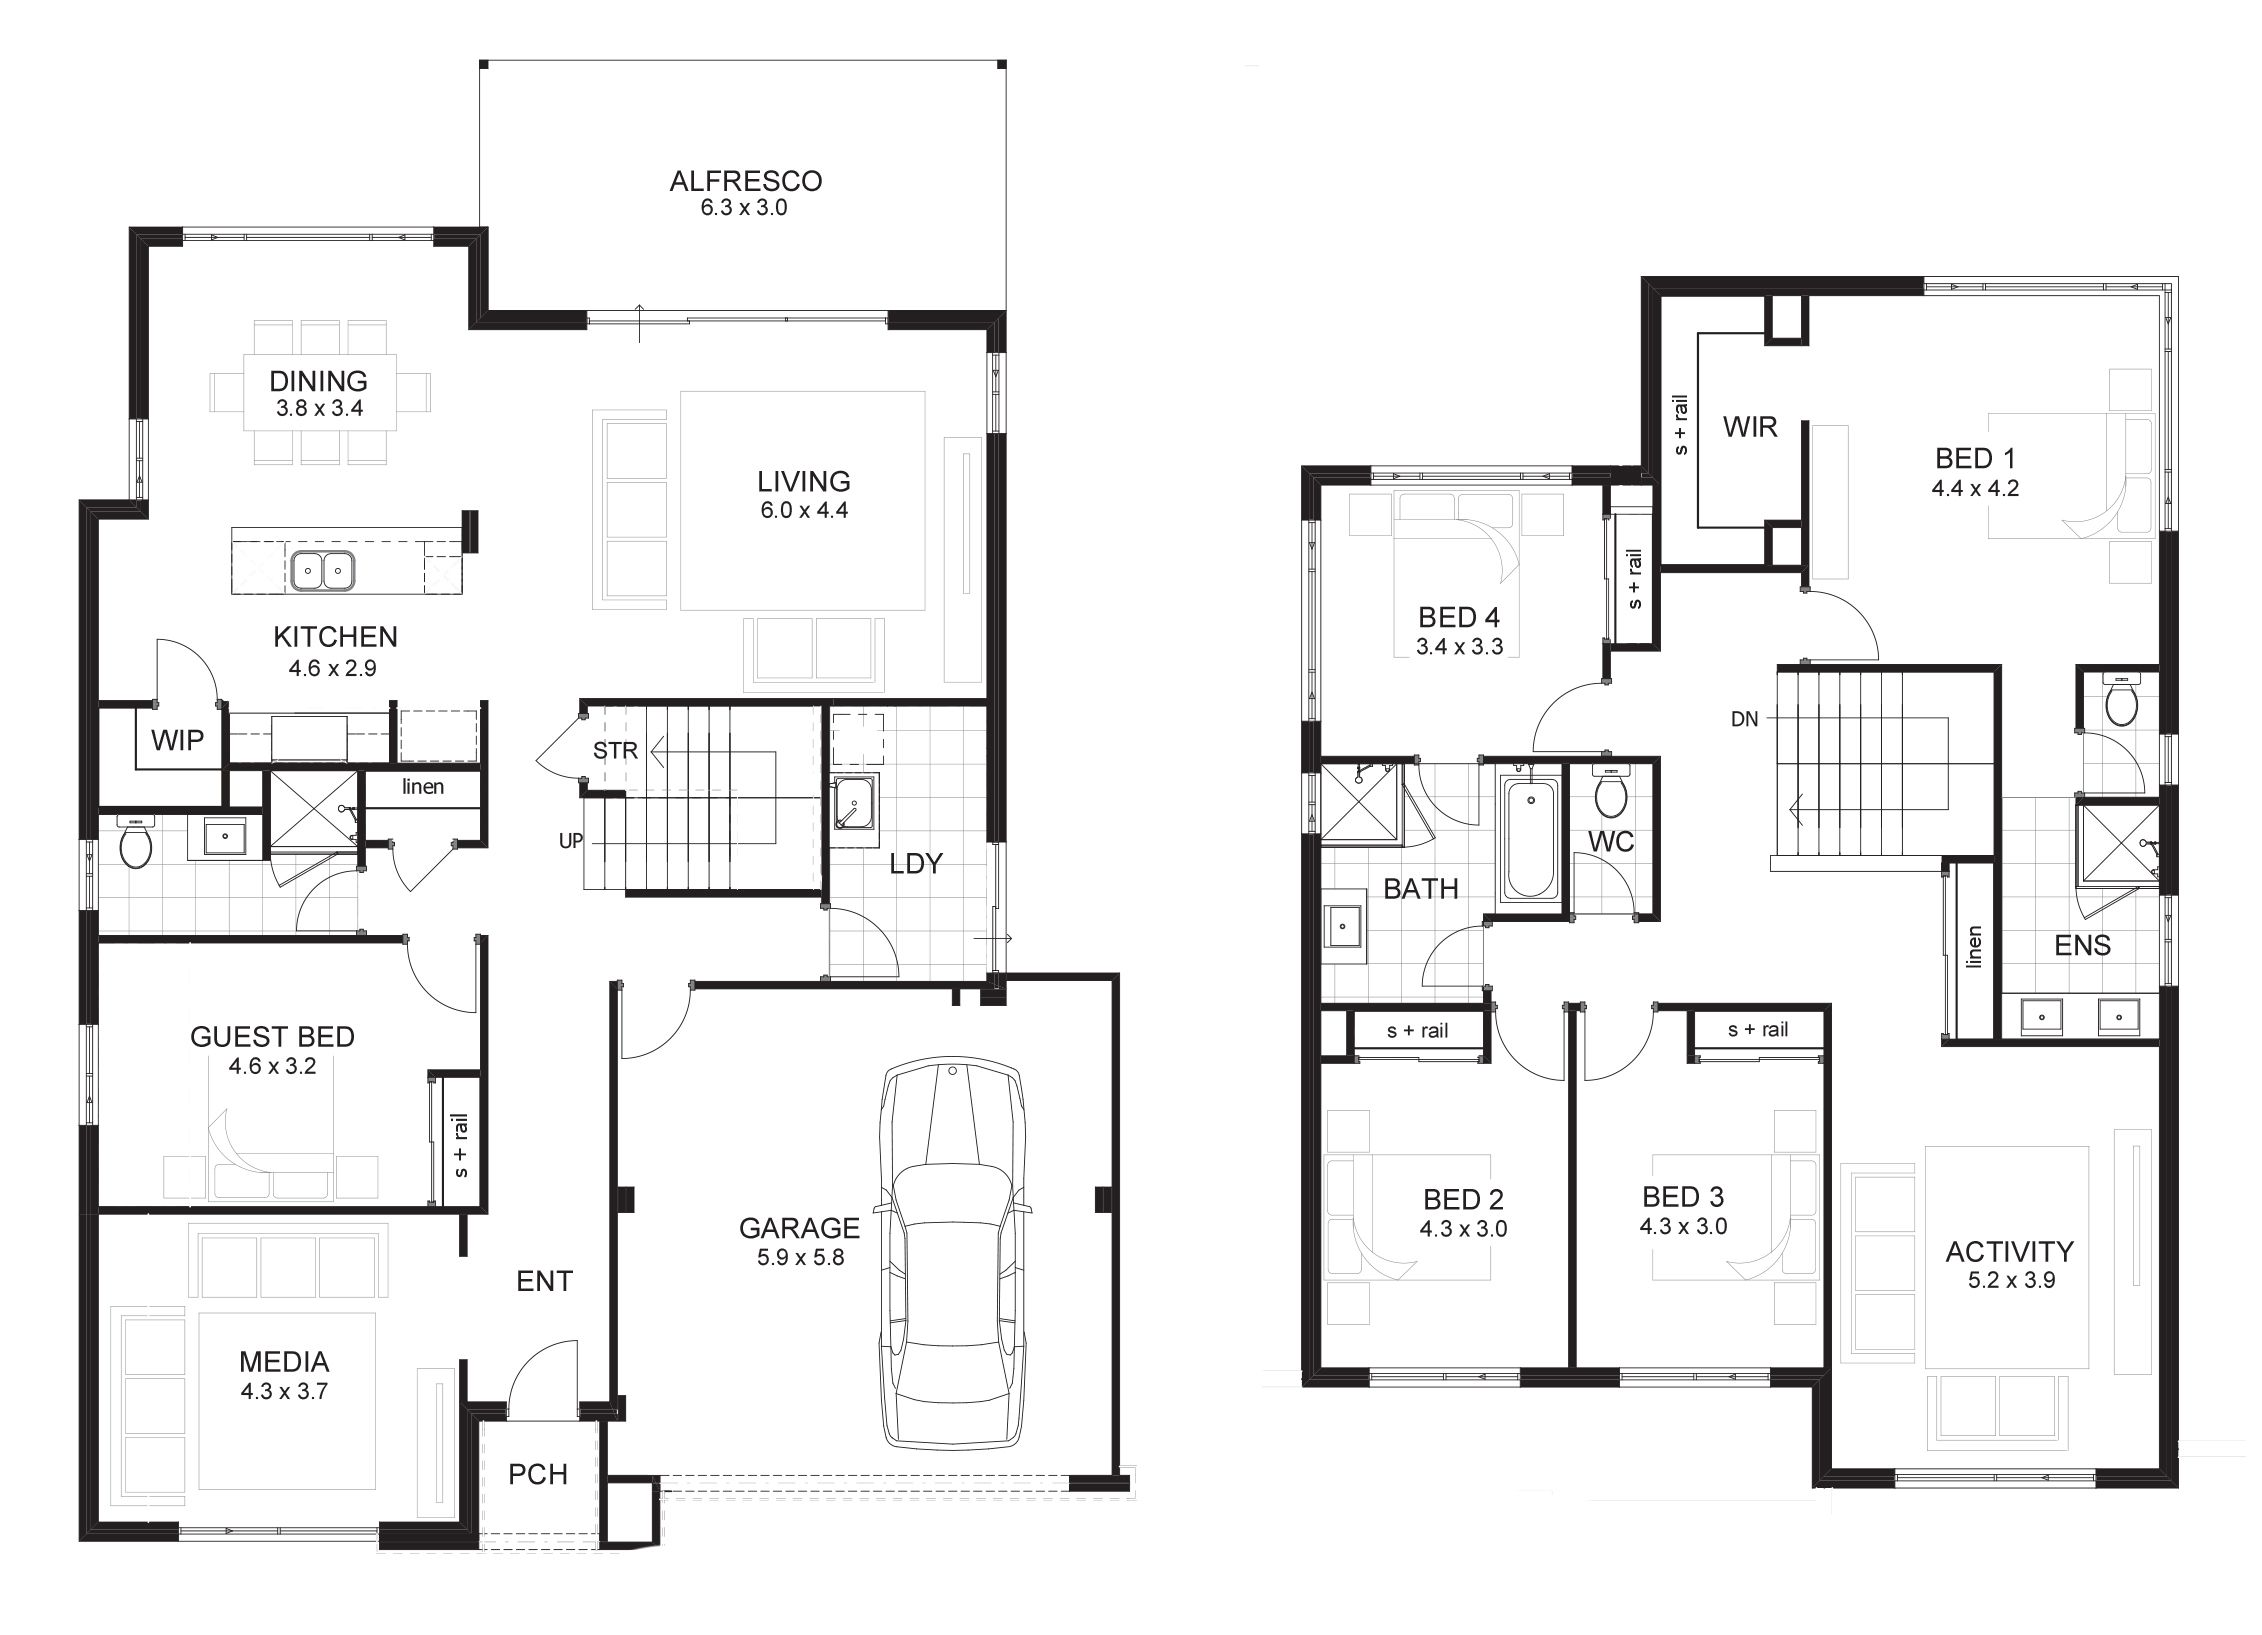 6 bedroom house plans perth pinterest for 6 bedroom home designs